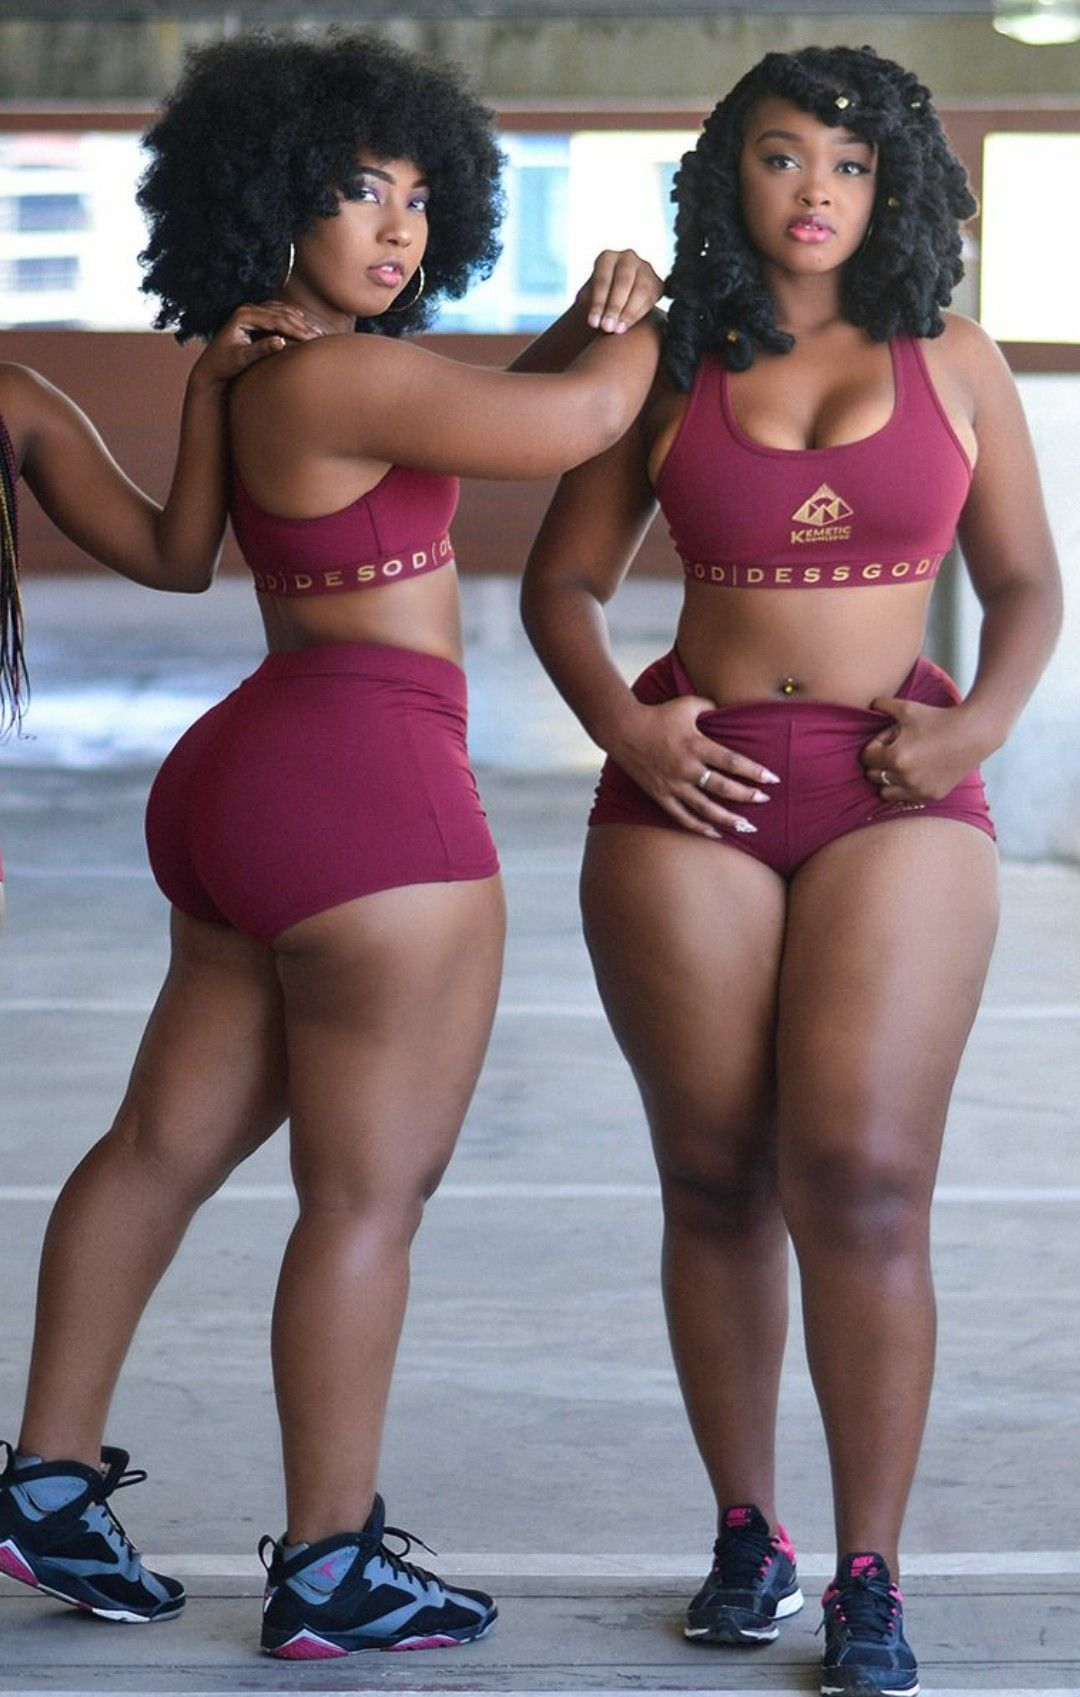 Regret, that thick black chicks pics will refrain